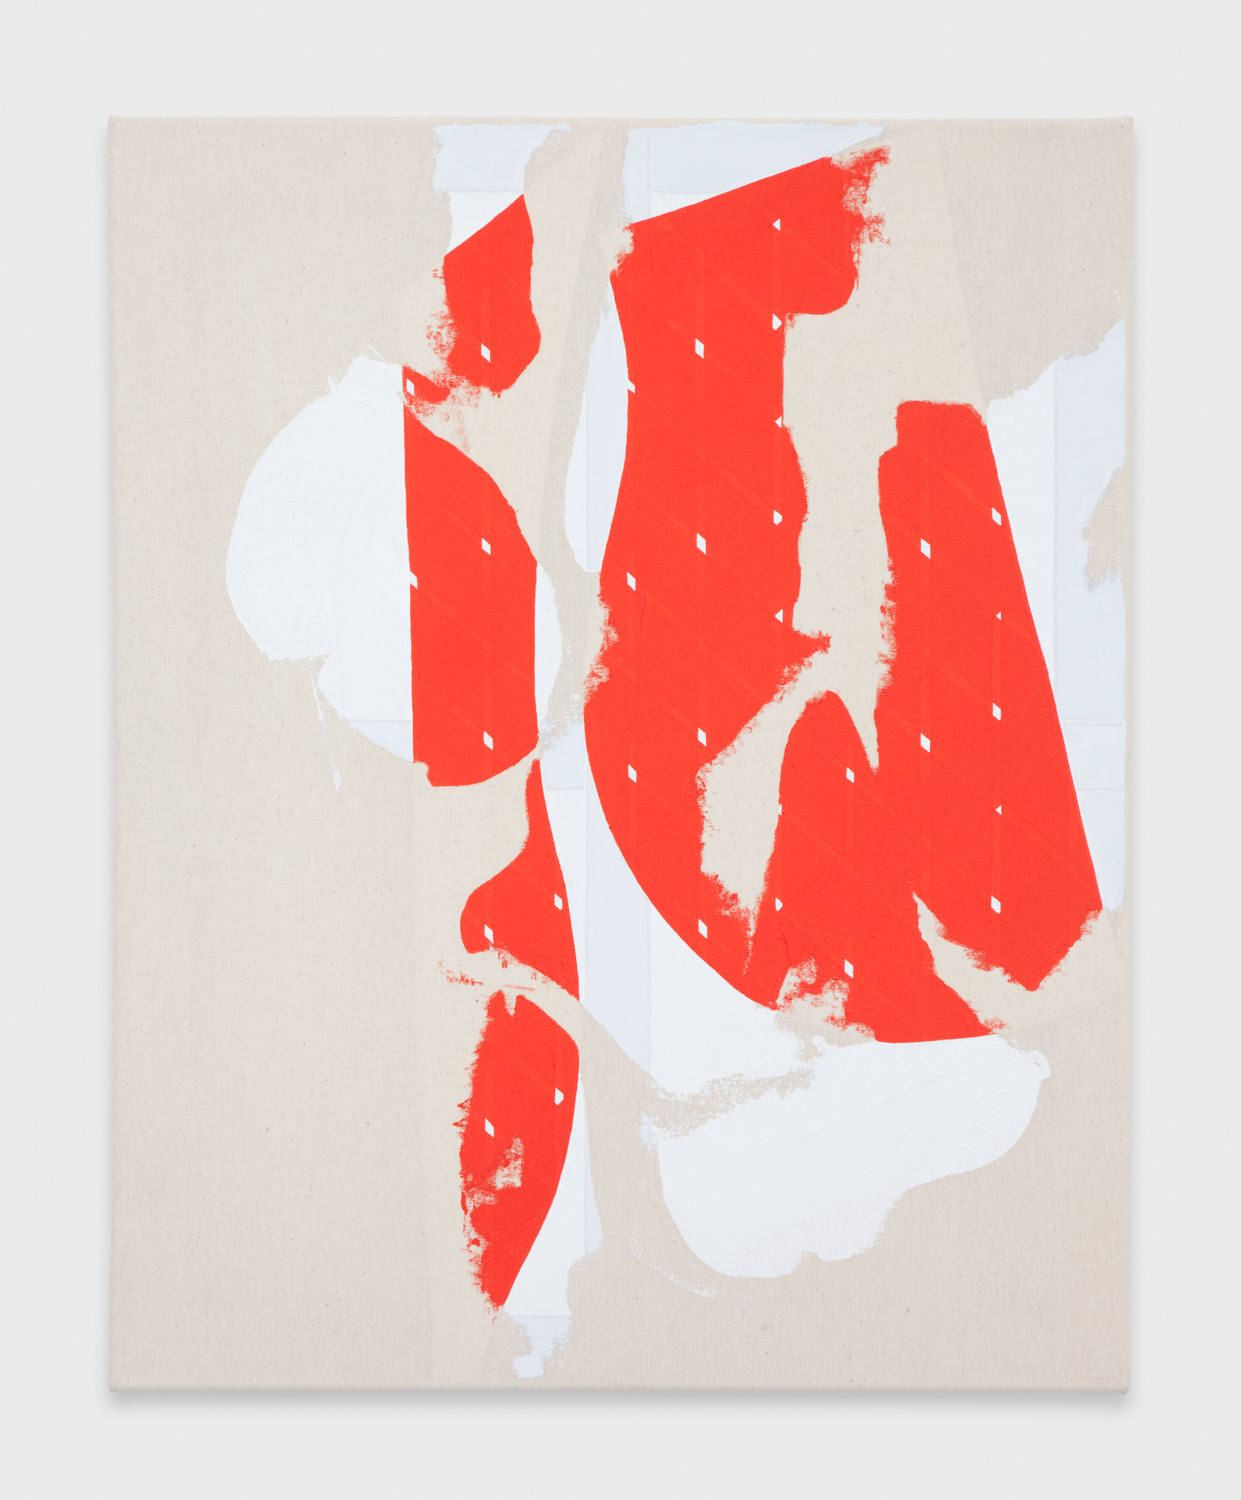 Zak Prekop  Red Transparency  2011 Oil and paper on canvas 25h x 20w in ZP152